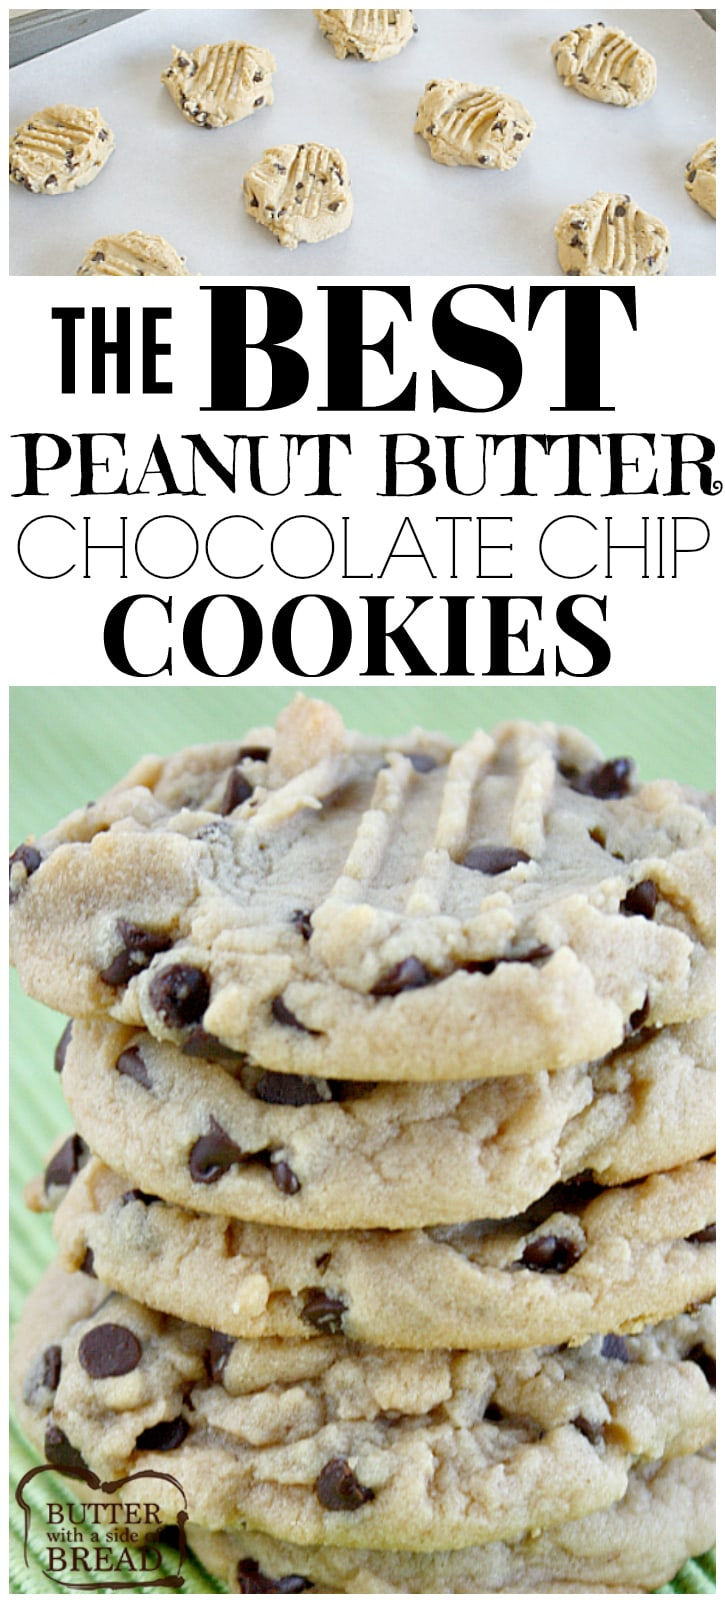 Peanut Butter Chocolate Chip Cookies are soft and chewy, and they turn out perfect every time! Start with an amazing Peanut Butter Cookie recipe and add chocolate chips to take these cookies to the next level!